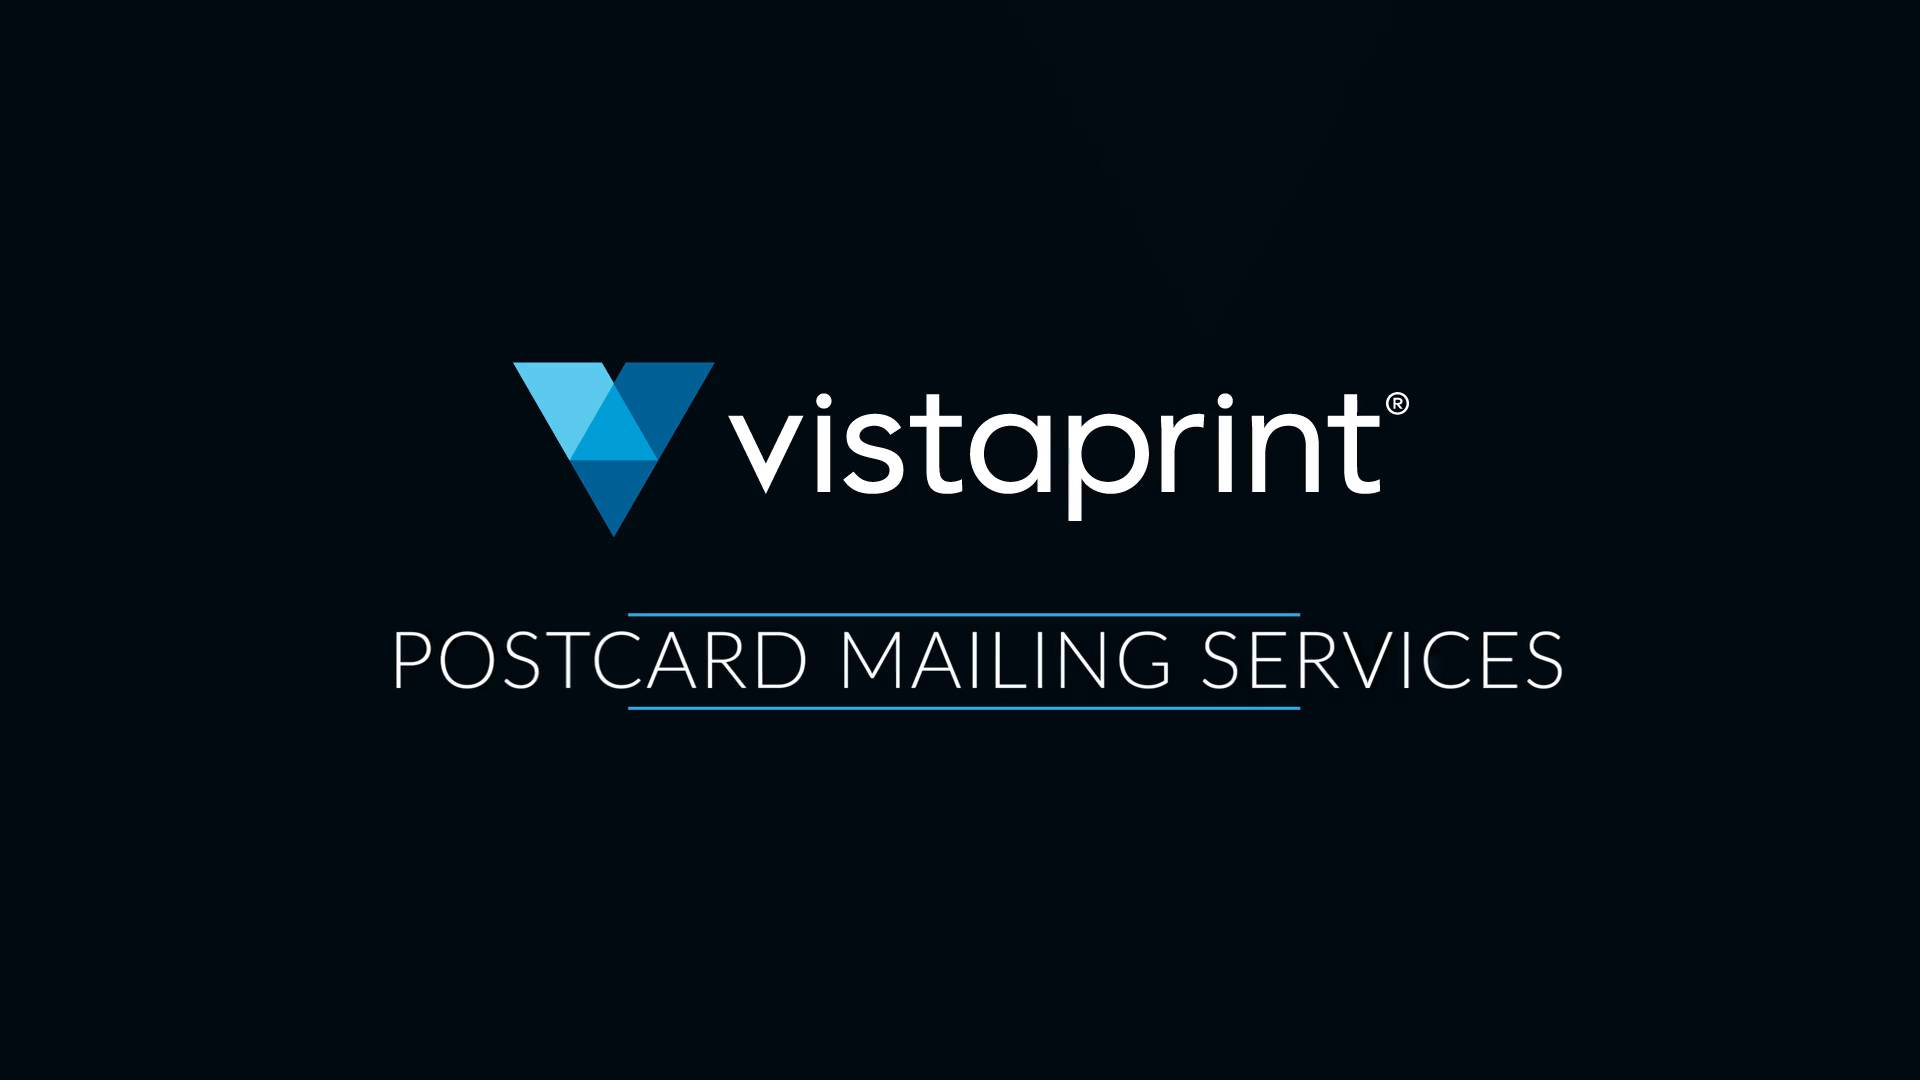 vistaprint customer care view subject